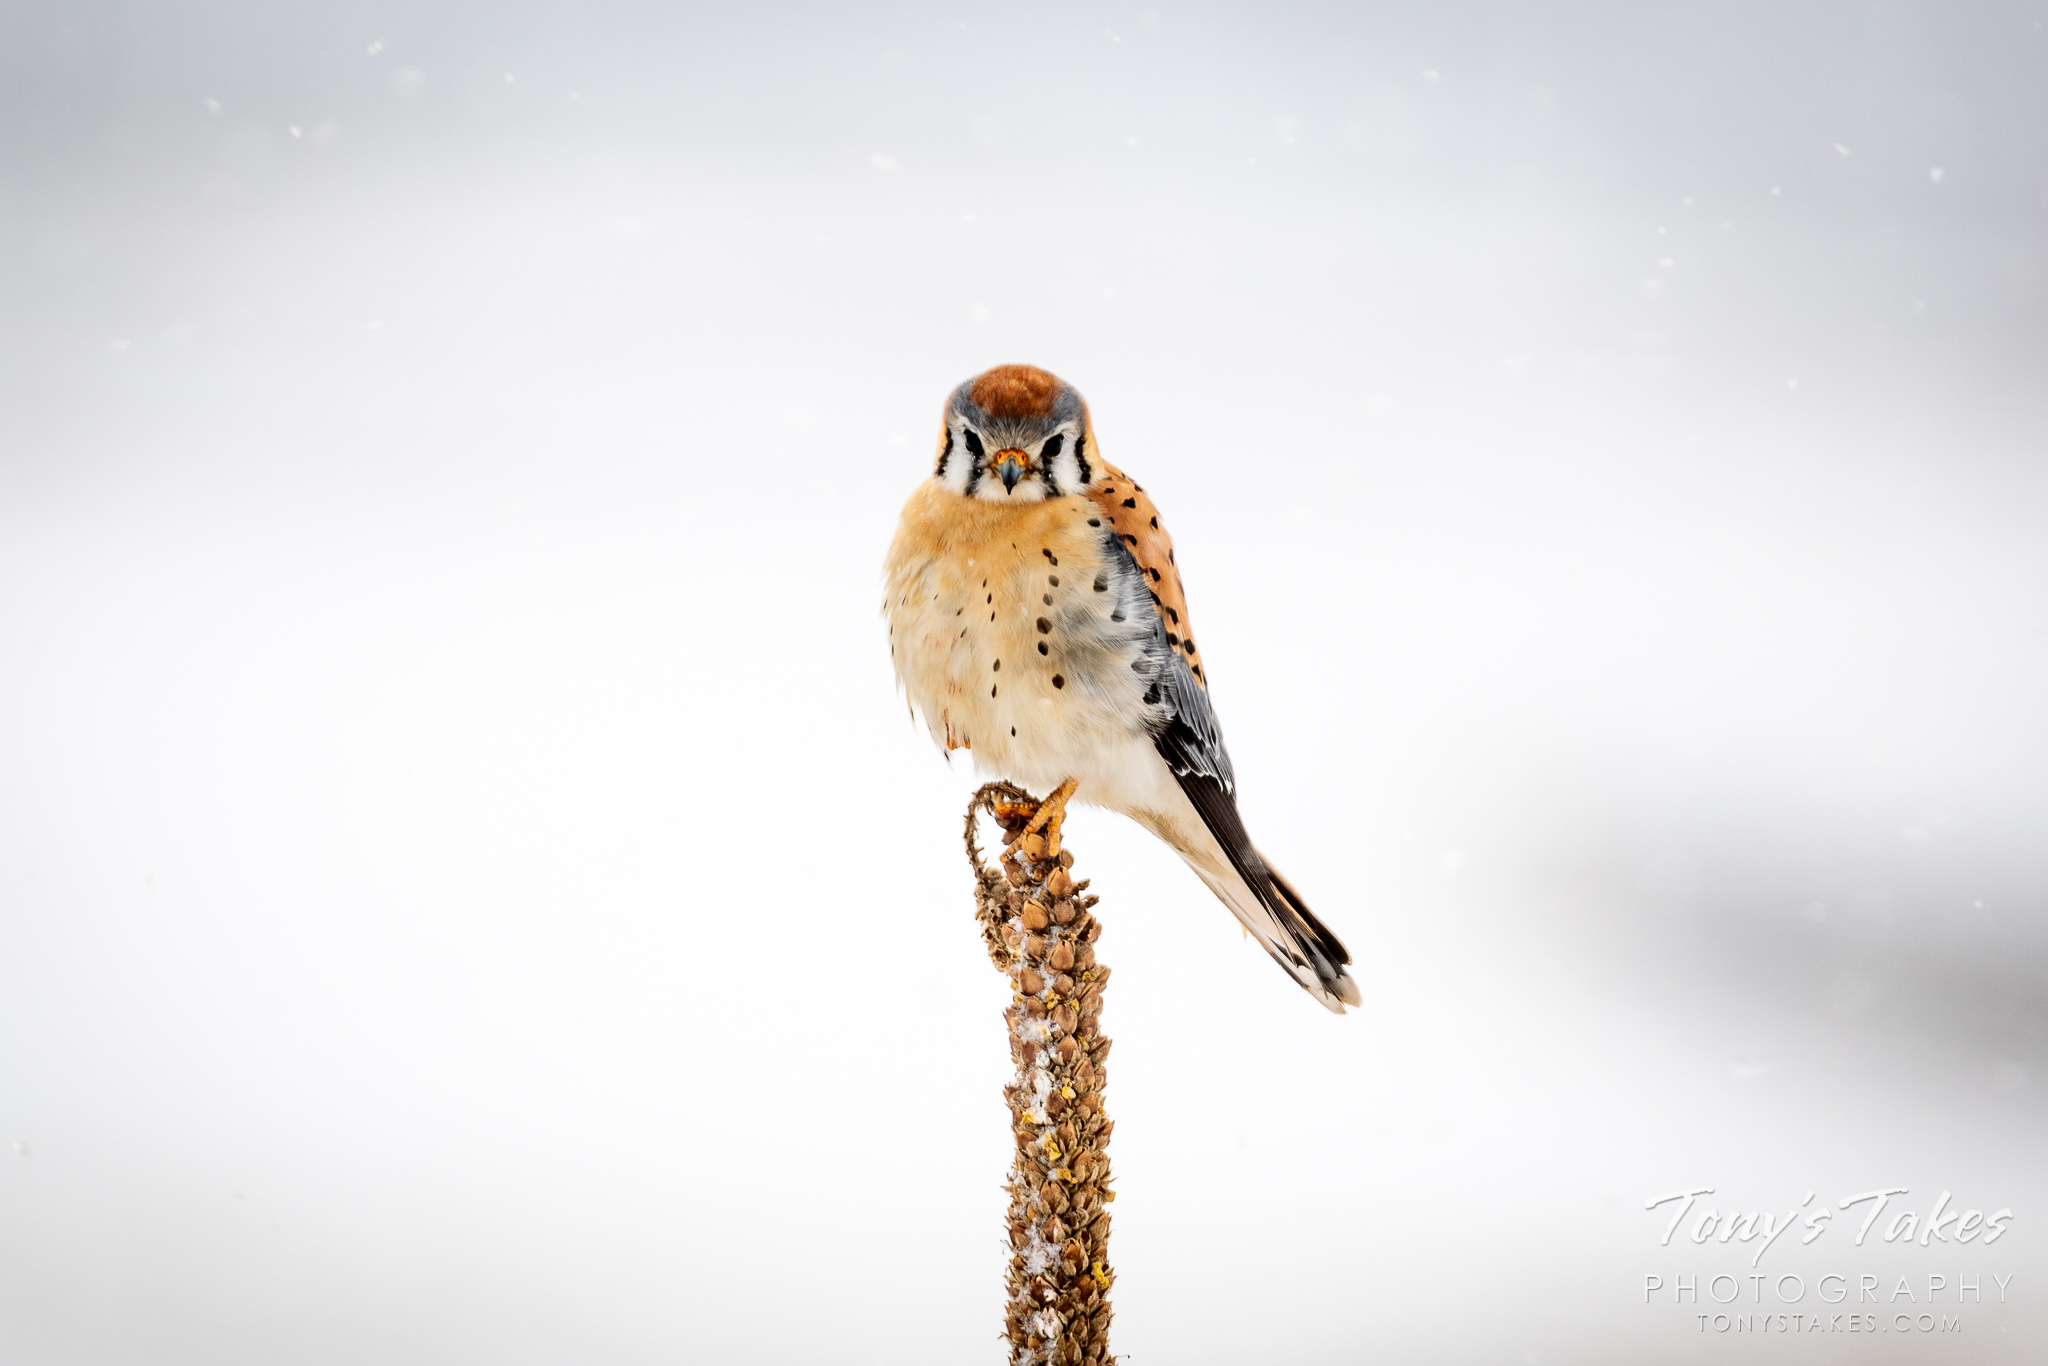 Handsome American kestrel provides a welcome distraction in a storm